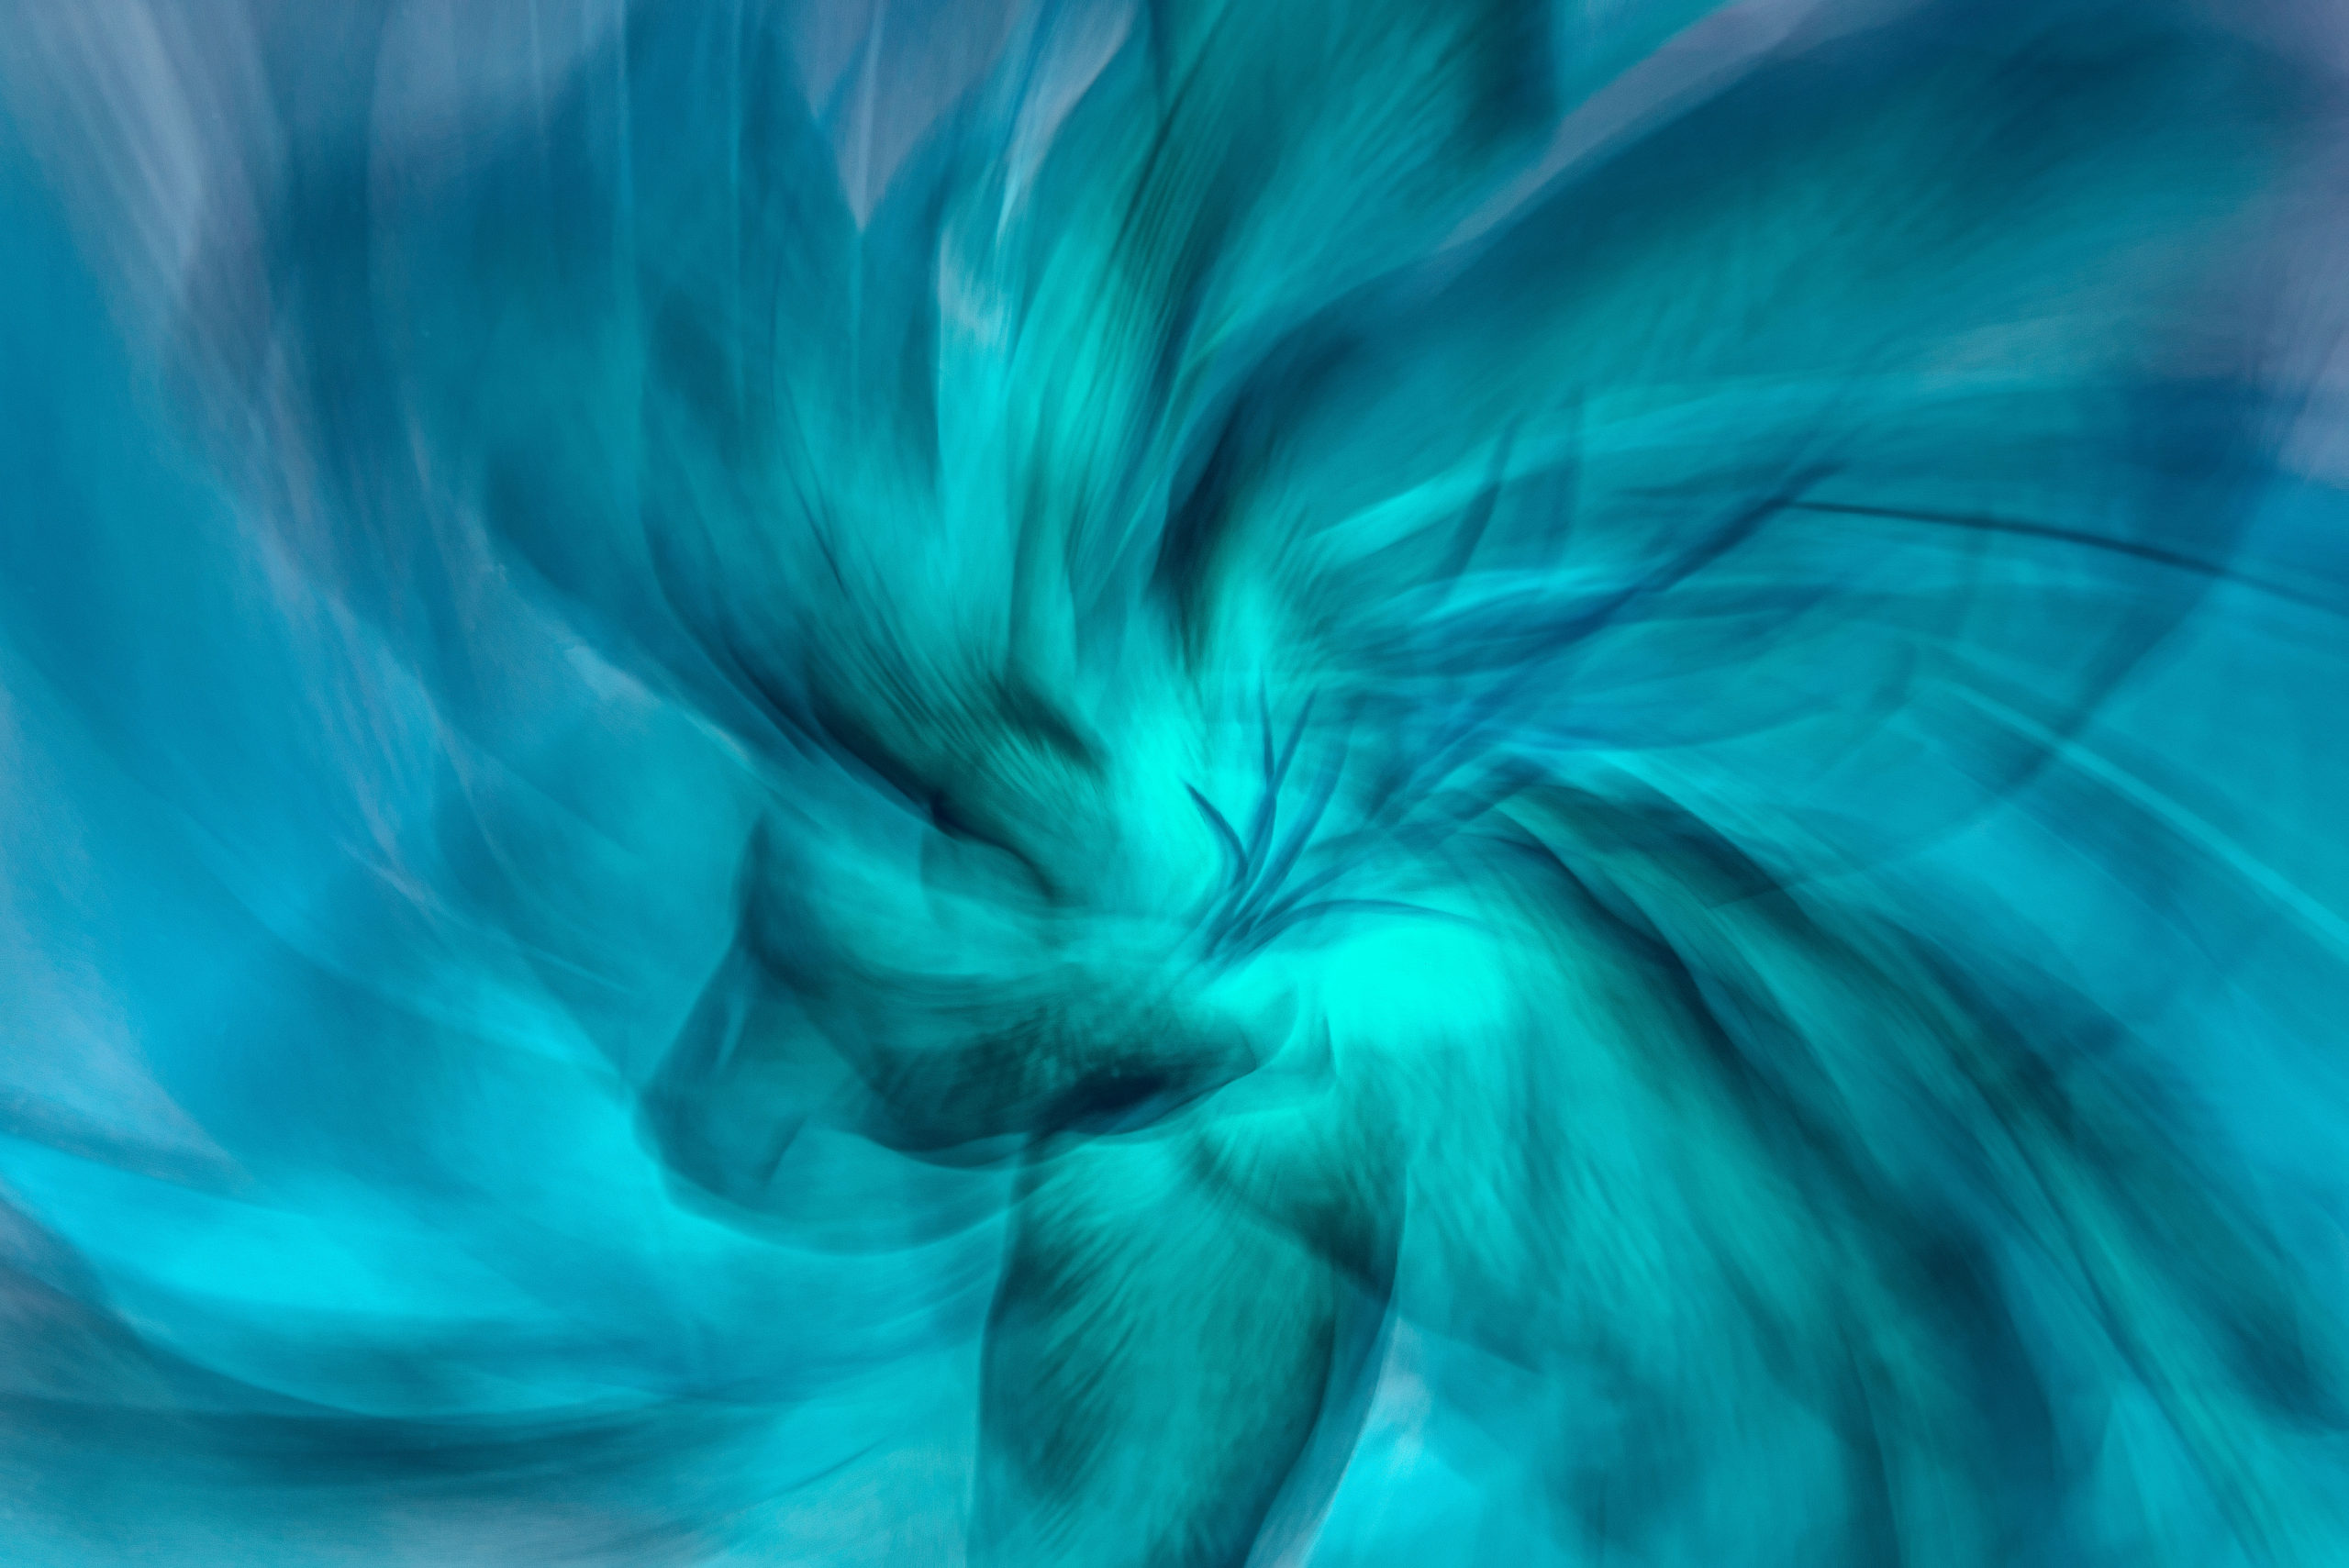 Asian Lily Study in Blue shows a spiral view of an Asiatic lily. The whole photo has been recolored to shades of teal blue.